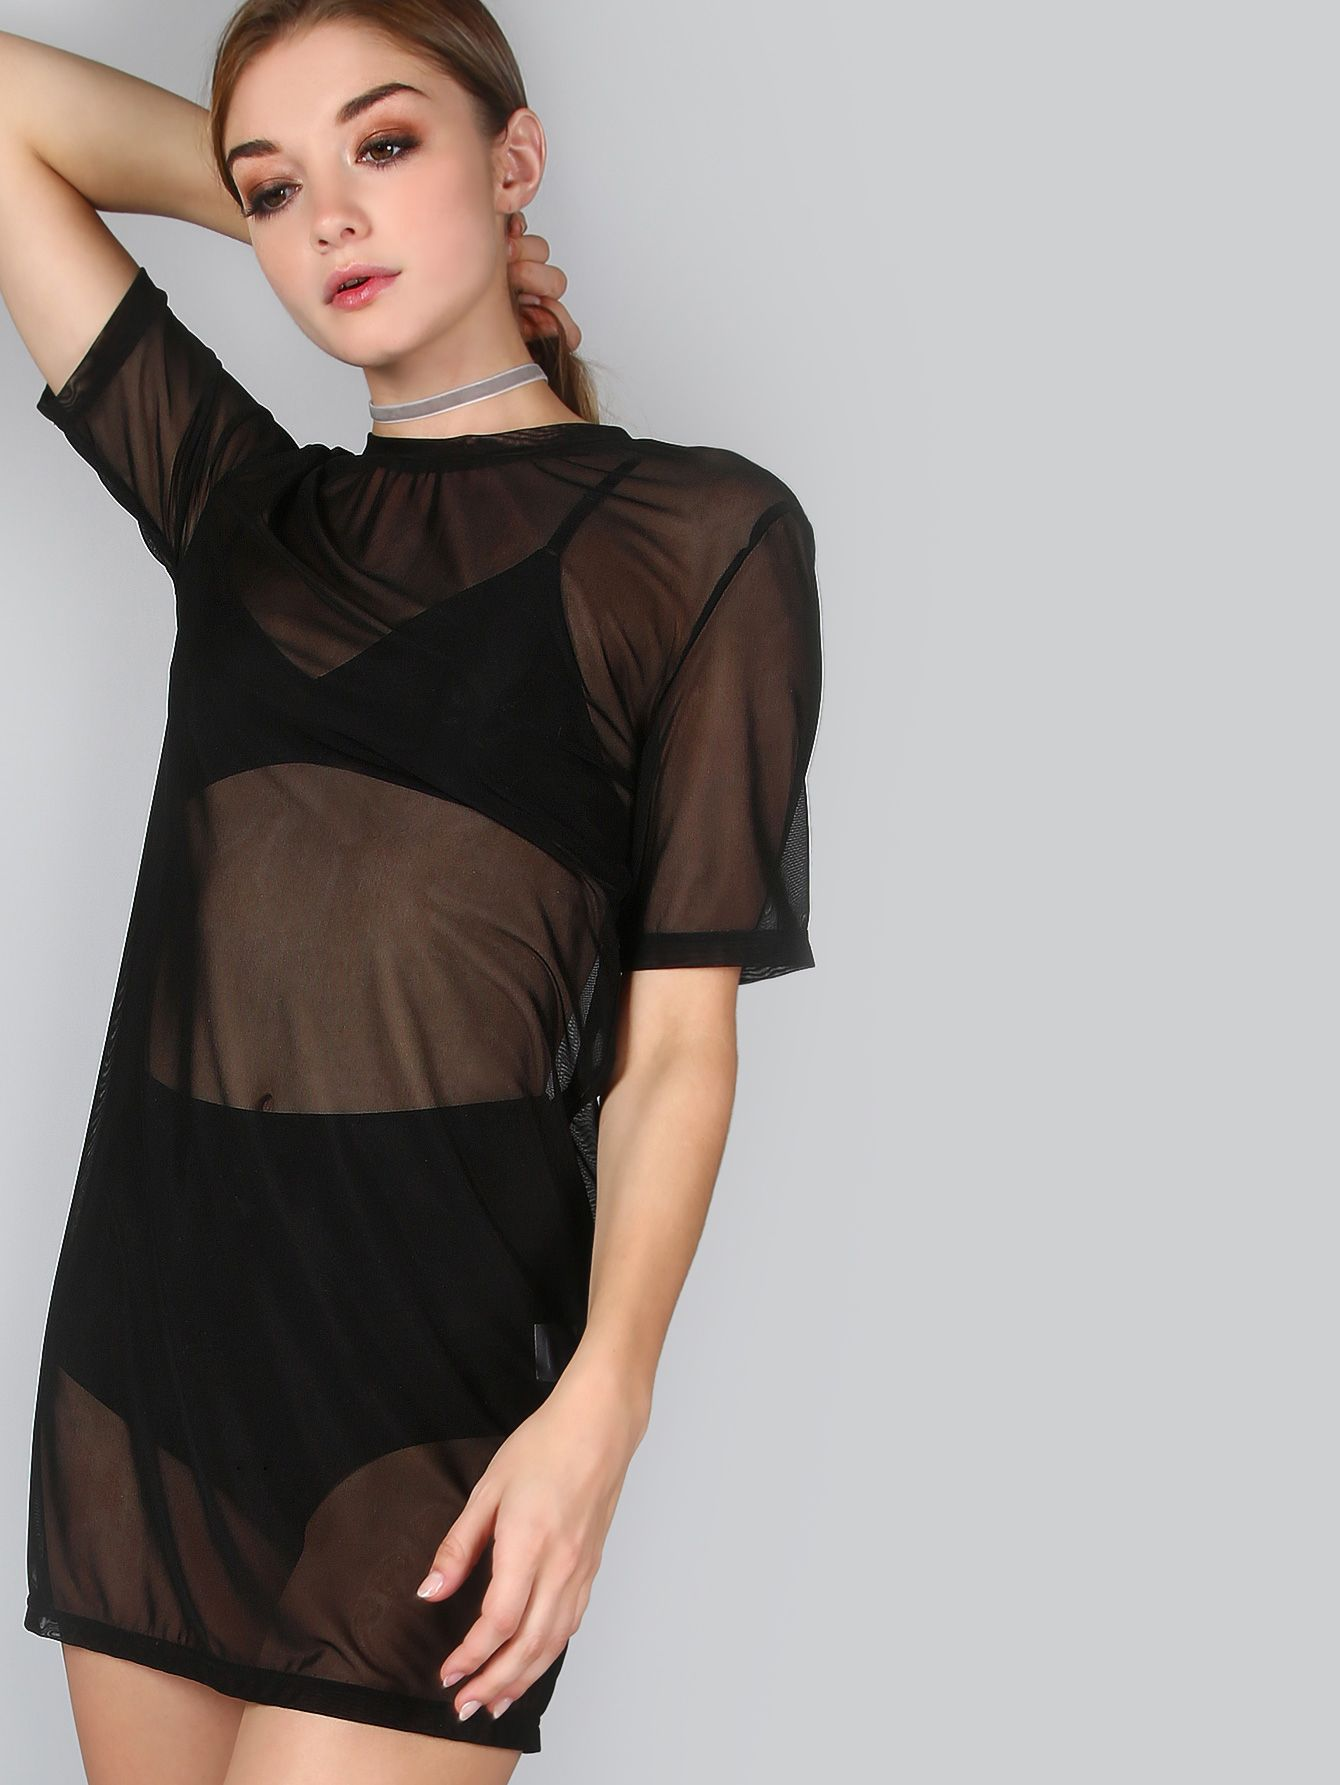 Shop Mesh T Shirt Dress Black Online Shein Offers Mesh T